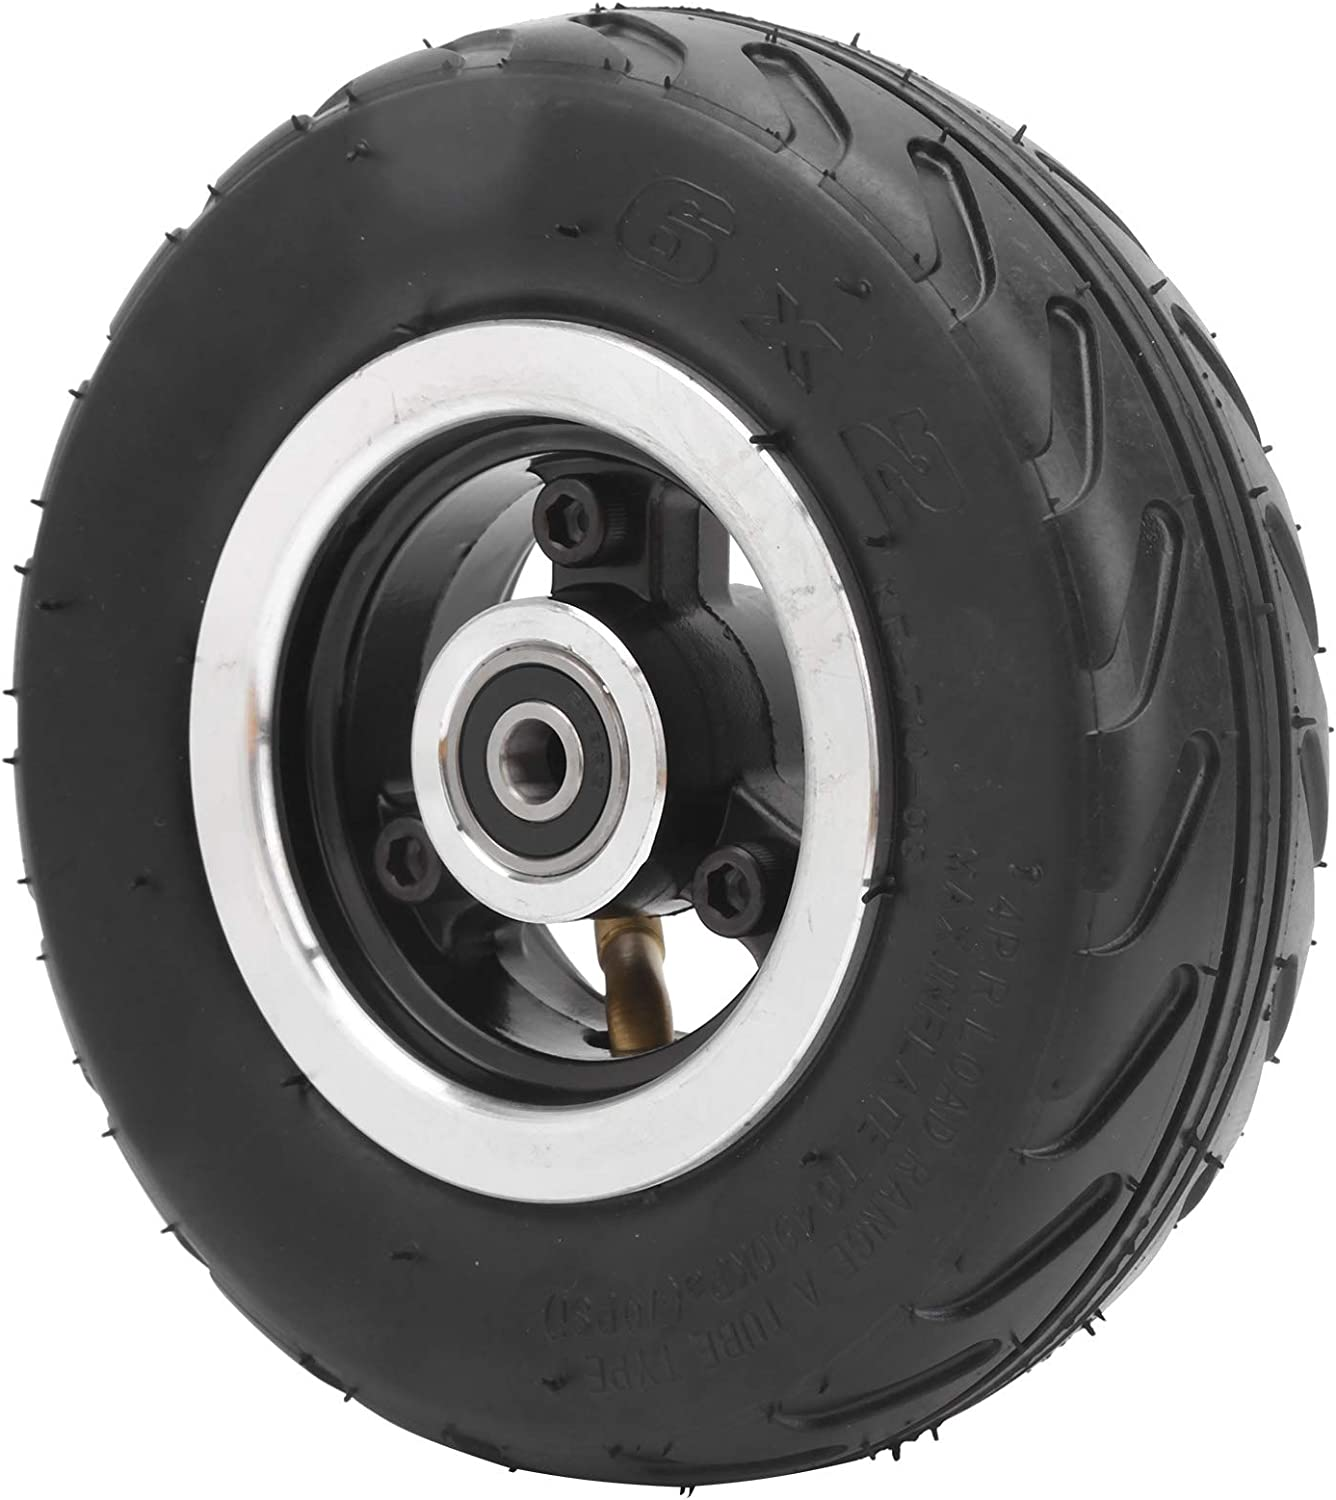 Wosune Pneumatictic Tirenflatable Air Tirex2 Tyre for Electric S